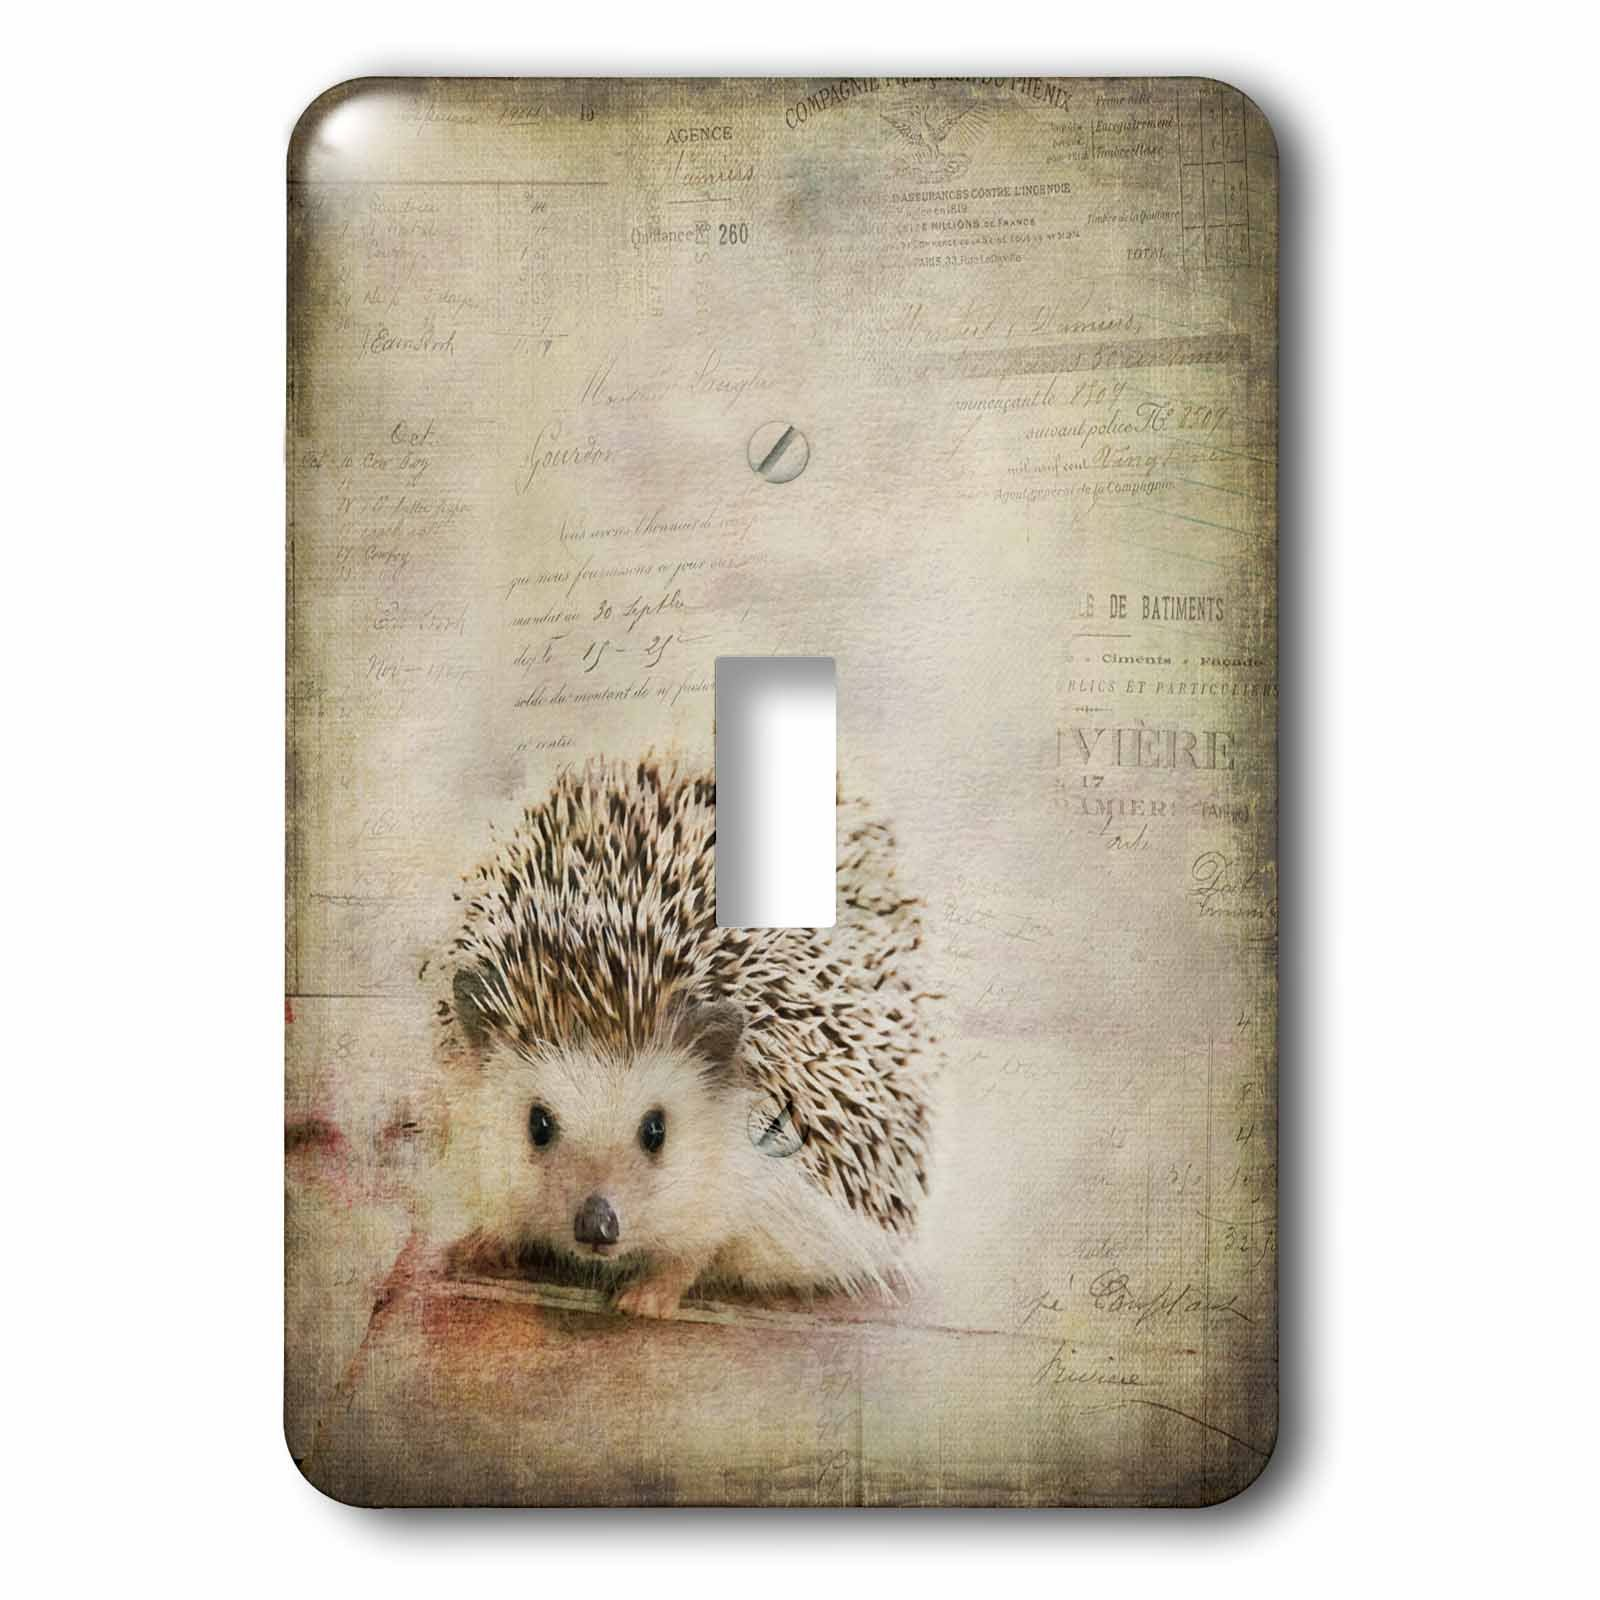 3dRose Andrea Haase Animals Illustration - Hedgehog Mixed Media Art With Typographic Elements - Light Switch Covers - single toggle switch (lsp_268162_1)